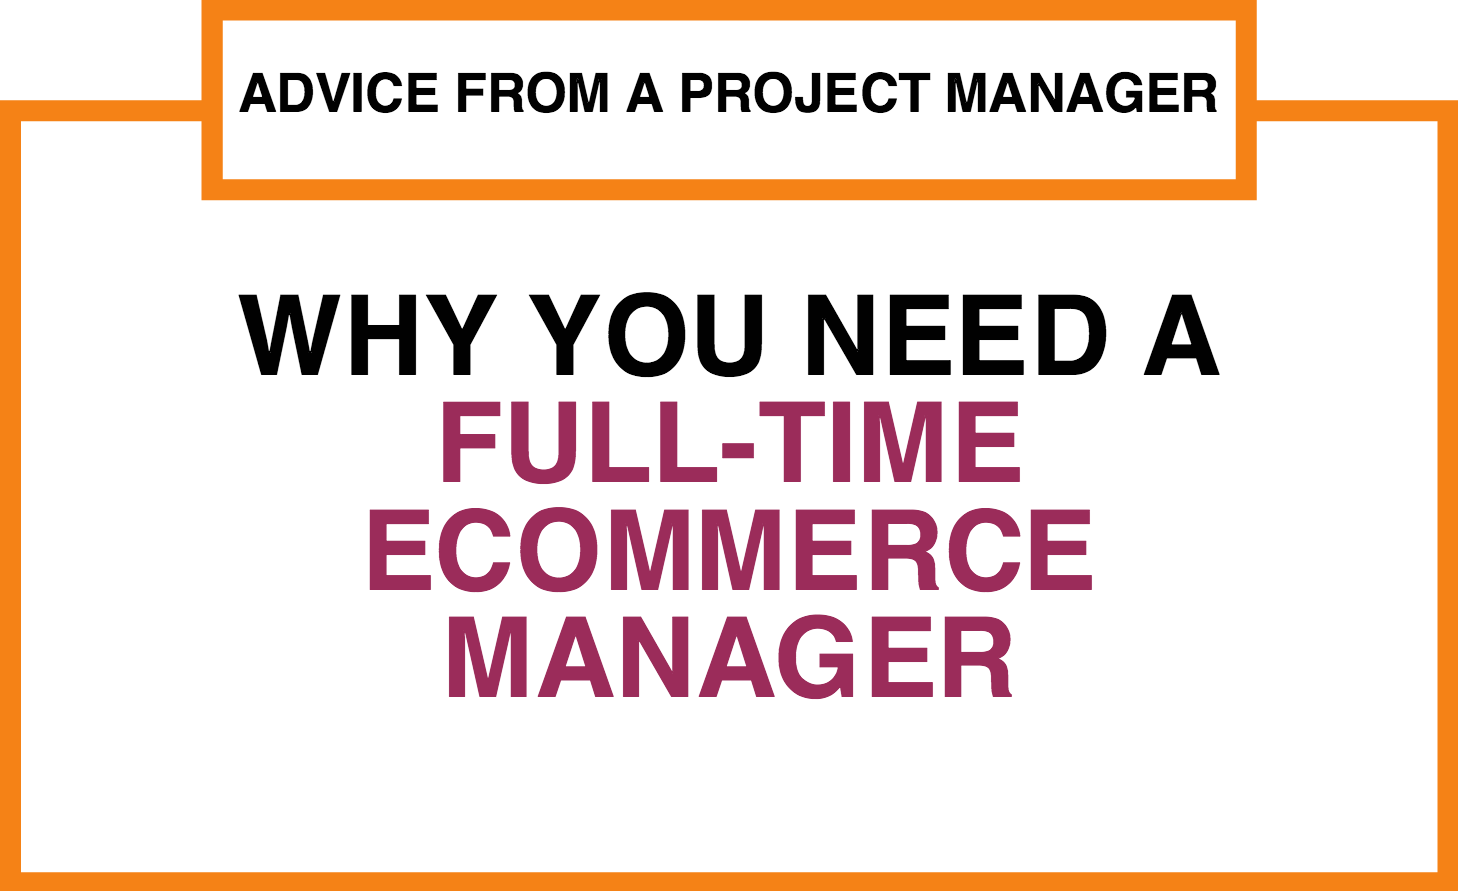 full_time_ecommerce_manager